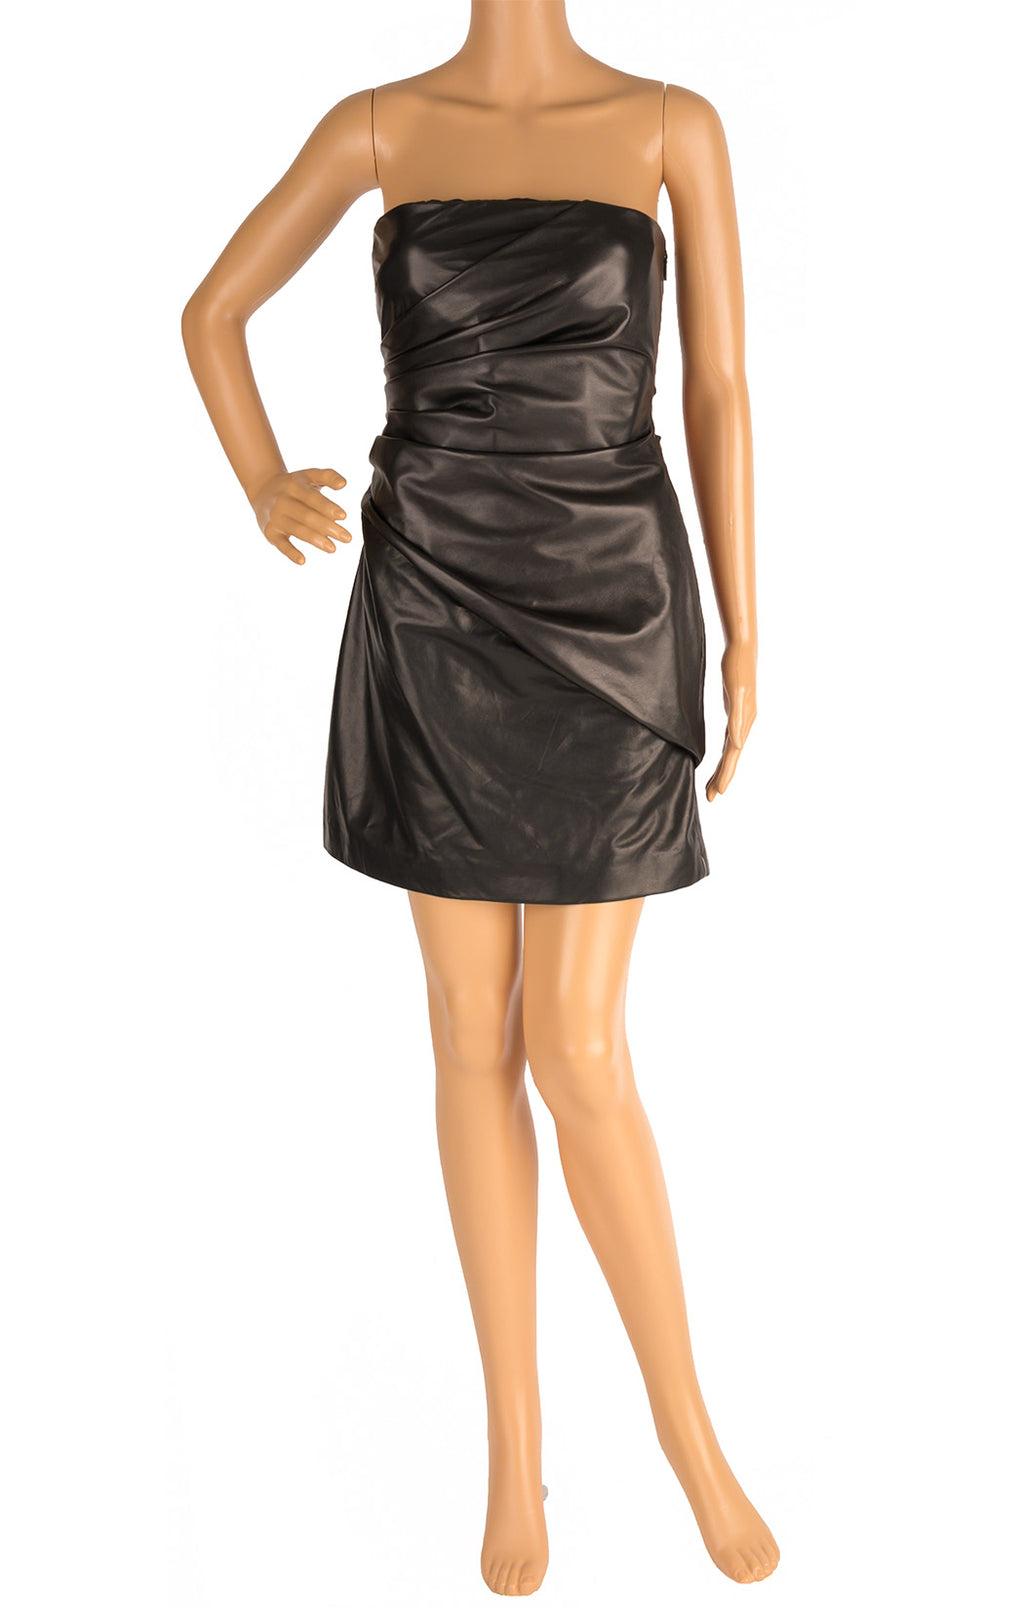 Front view of VERSACE with tags Leather dress Size: IT 42 (comparable to US 4-6)